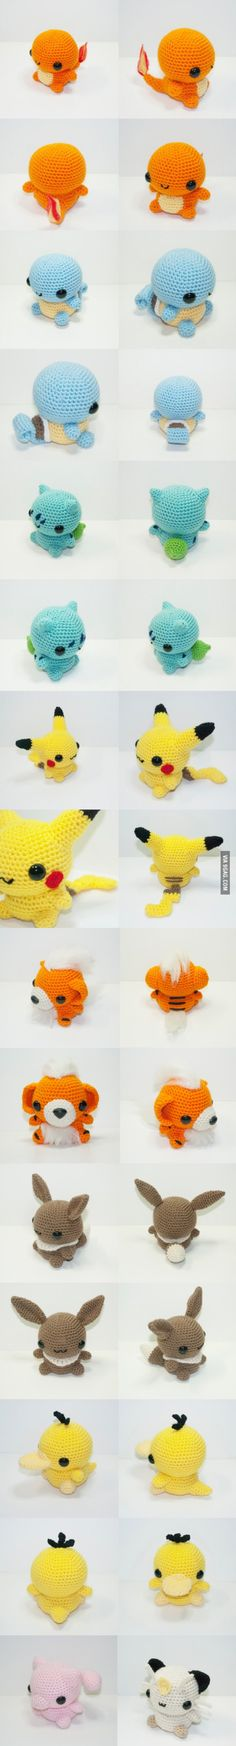 Ideas For Crochet Patterns Amigurumi Pokemon Art Crochet Pokemon, Crochet Amigurumi, Amigurumi Patterns, Crochet Dolls, Knitting Patterns, Crochet Patterns, Cute Crochet, Crochet Crafts, Yarn Crafts